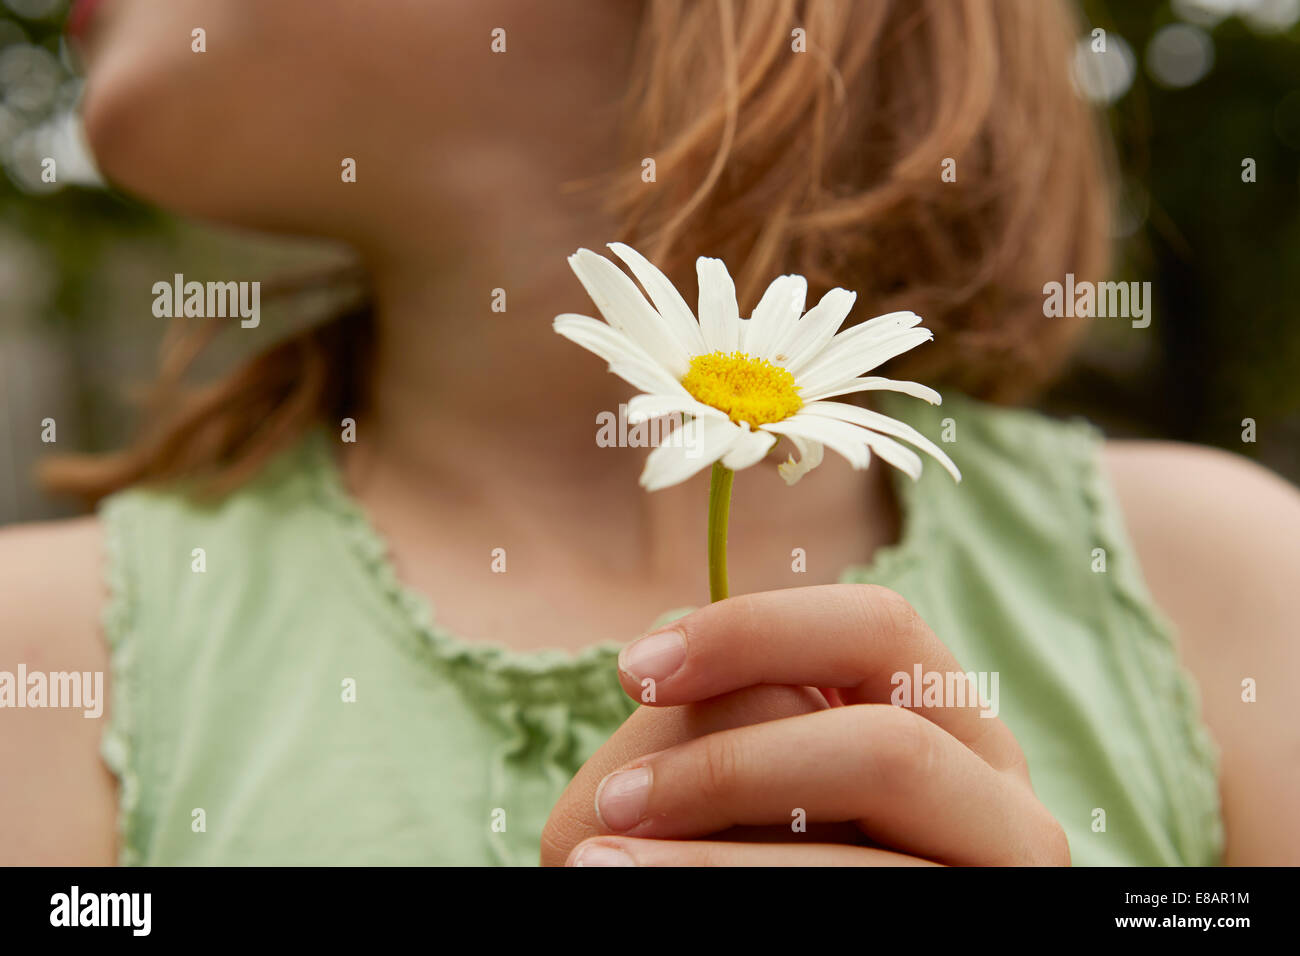 Cropped image of girl holding daisy flower - Stock Image